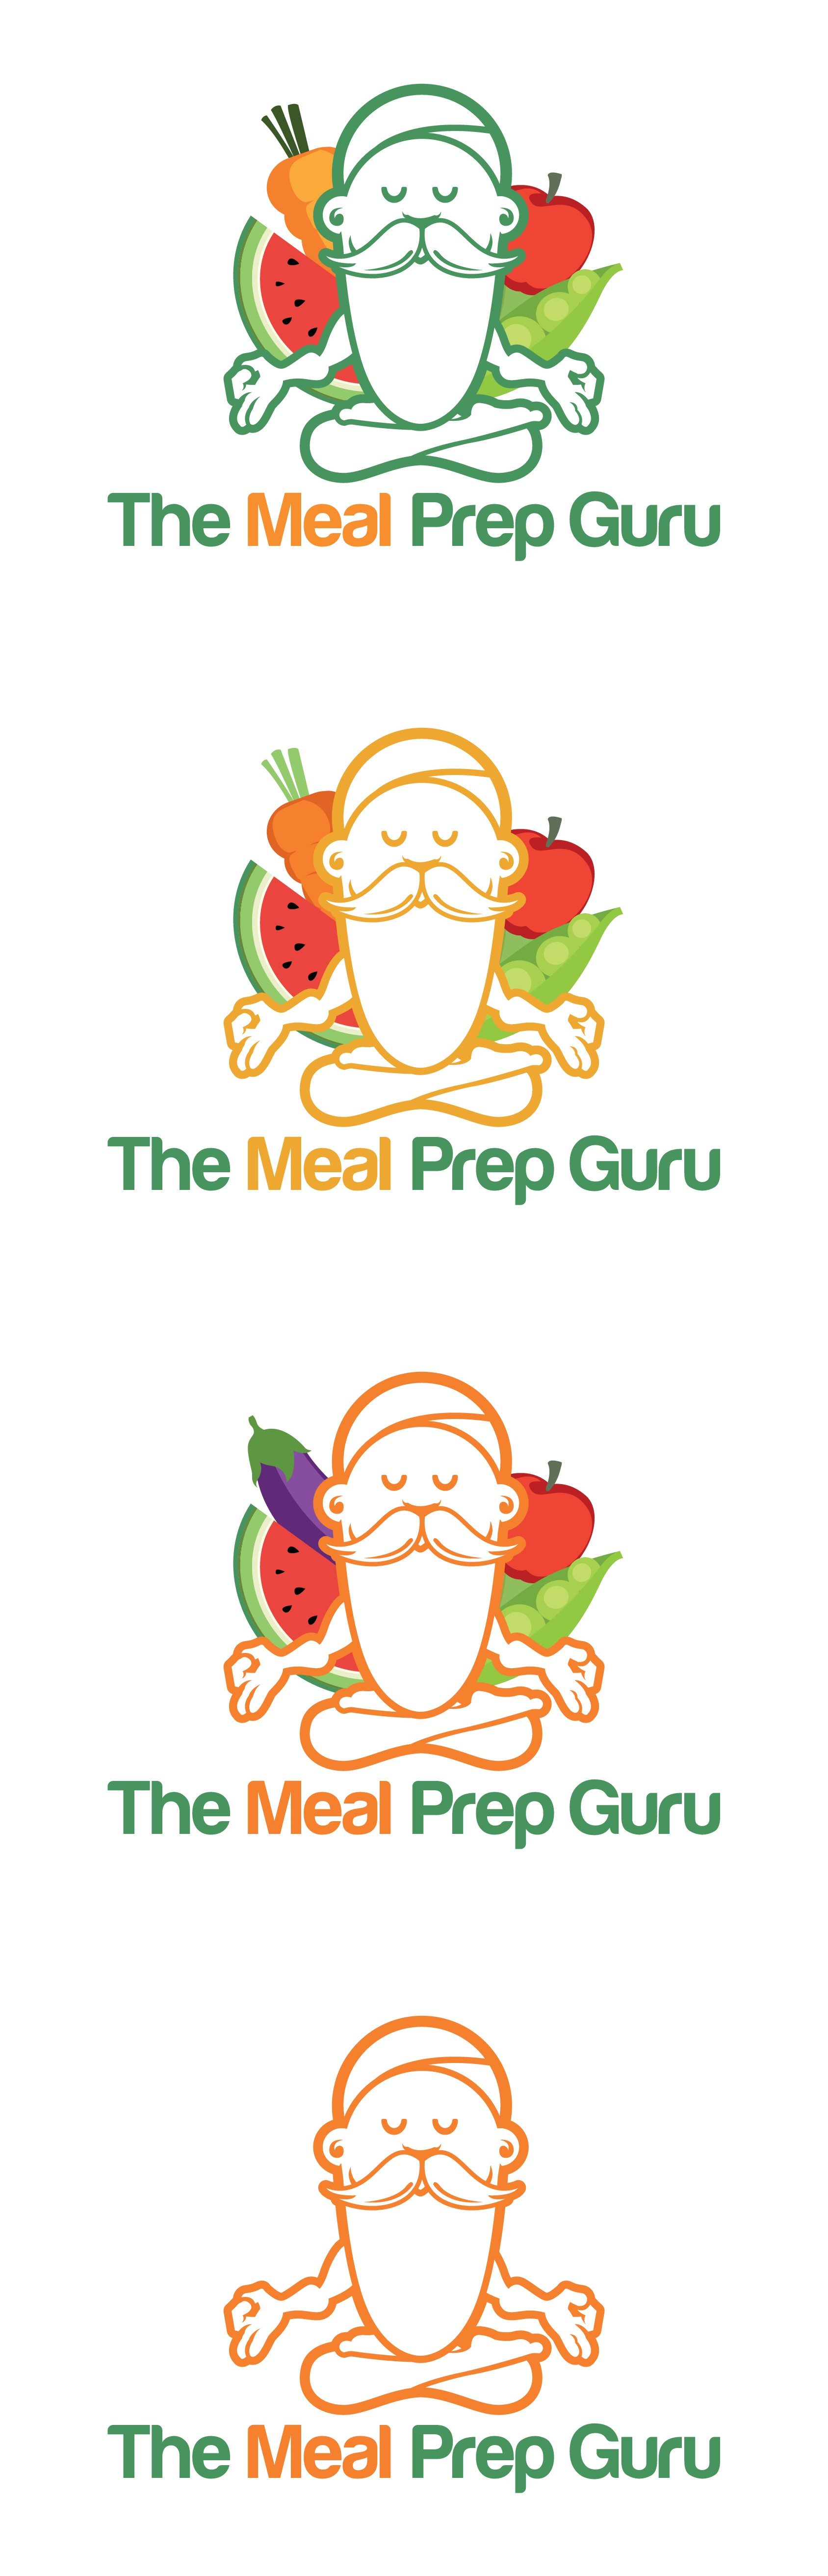 The Meal Prep Guru, Delivering healthy meals daily!